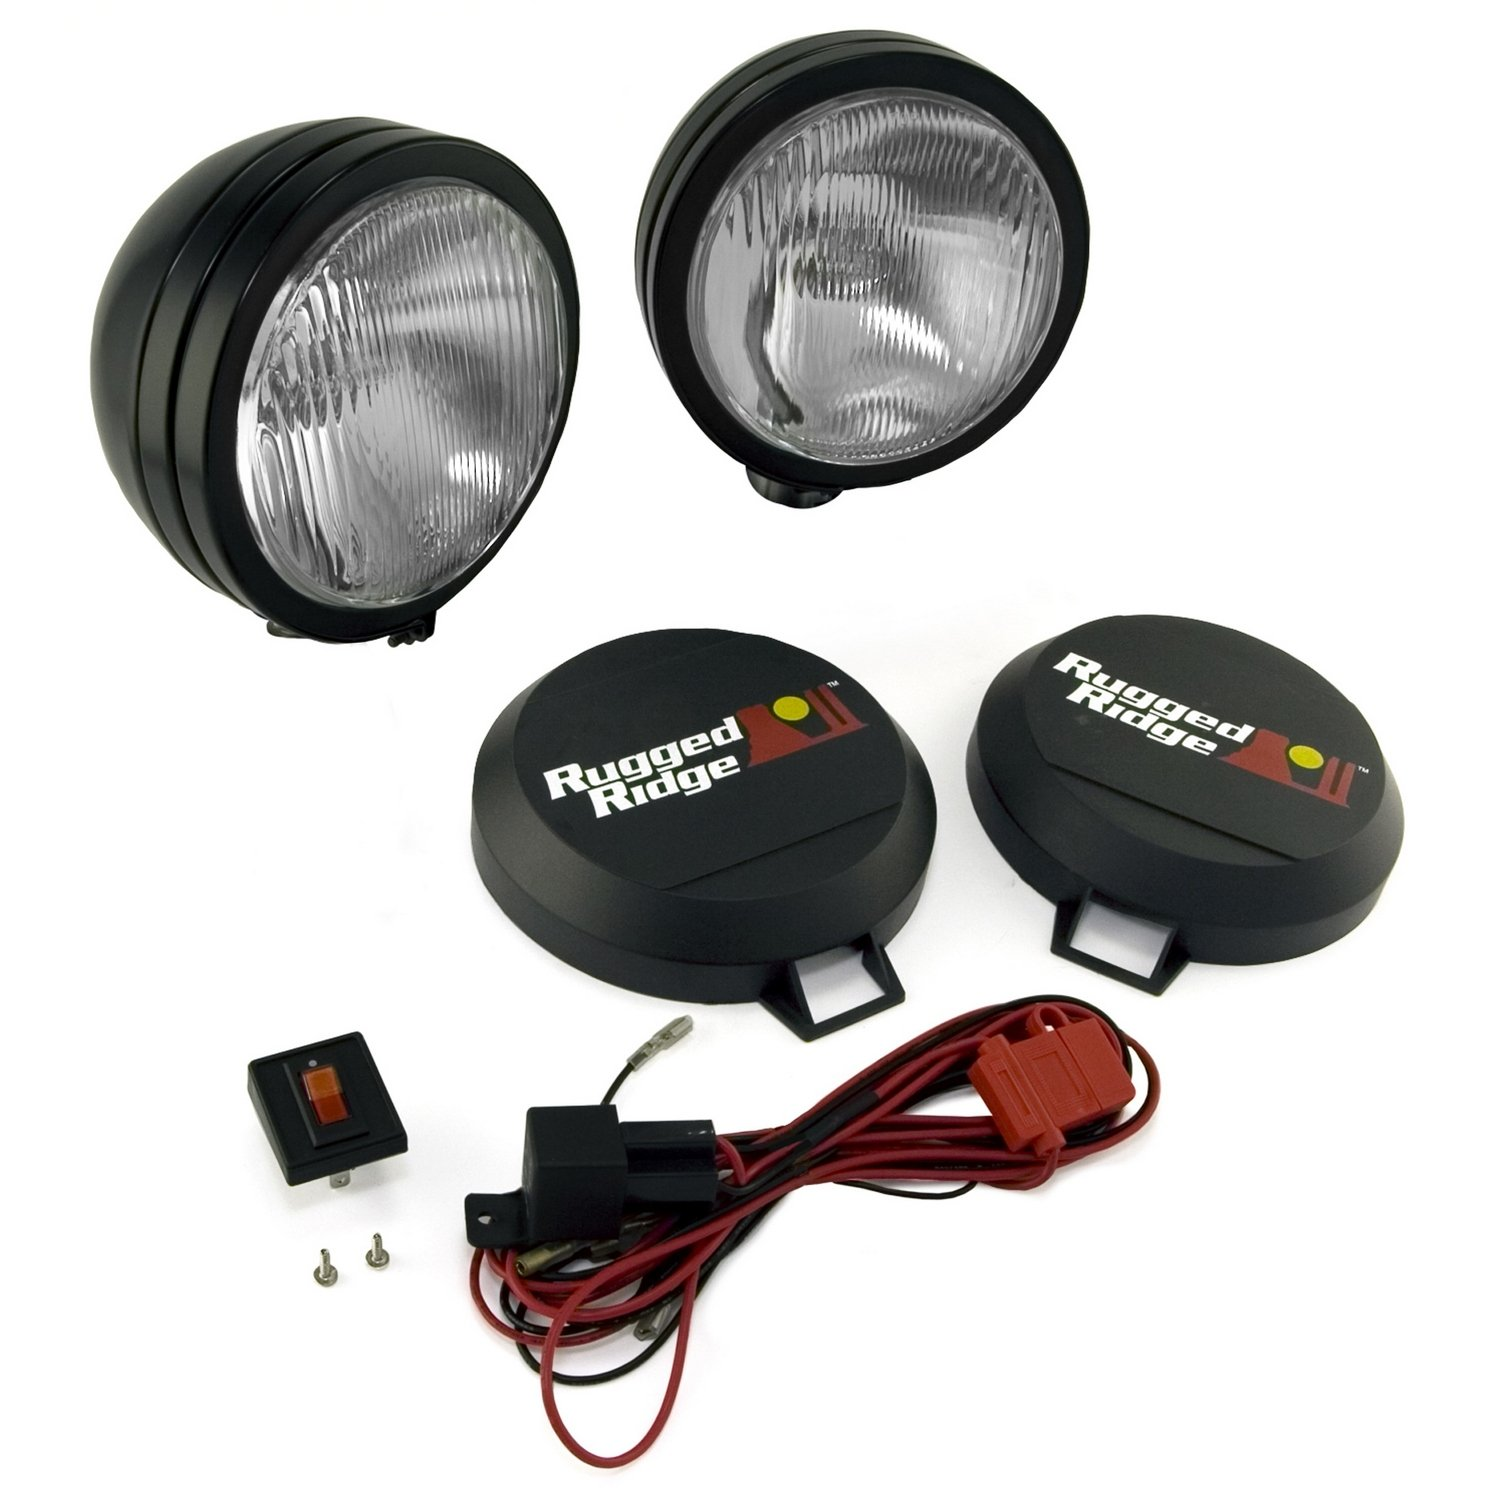 Rugged Ridge 1520552 5 Black Round Hid Off Road Light 1995 Dodge Ram 1500 Wiring Diagram Fog Lamps With Harness Pair Automotive